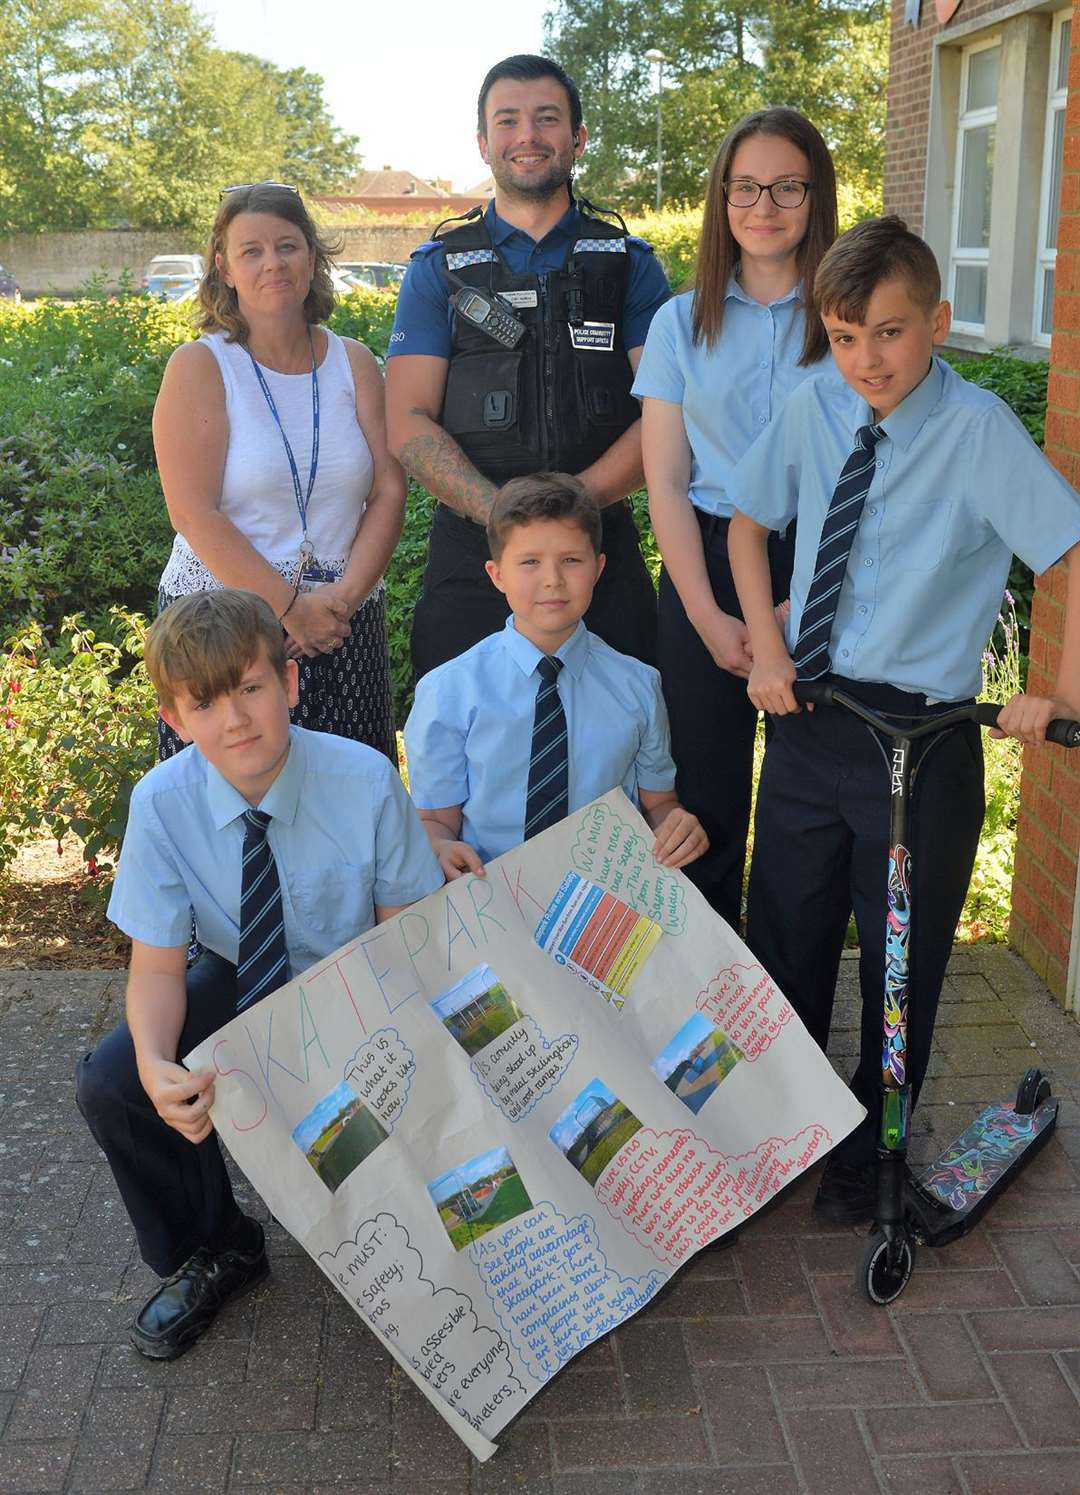 Skate park campaigners Dan Beynon, Leon Treharne, Ethan Eagling and Megan Conti-Lamont, pictured displaying some of their designs, with teacher Lisa Collins and PCSO Colin Gedney